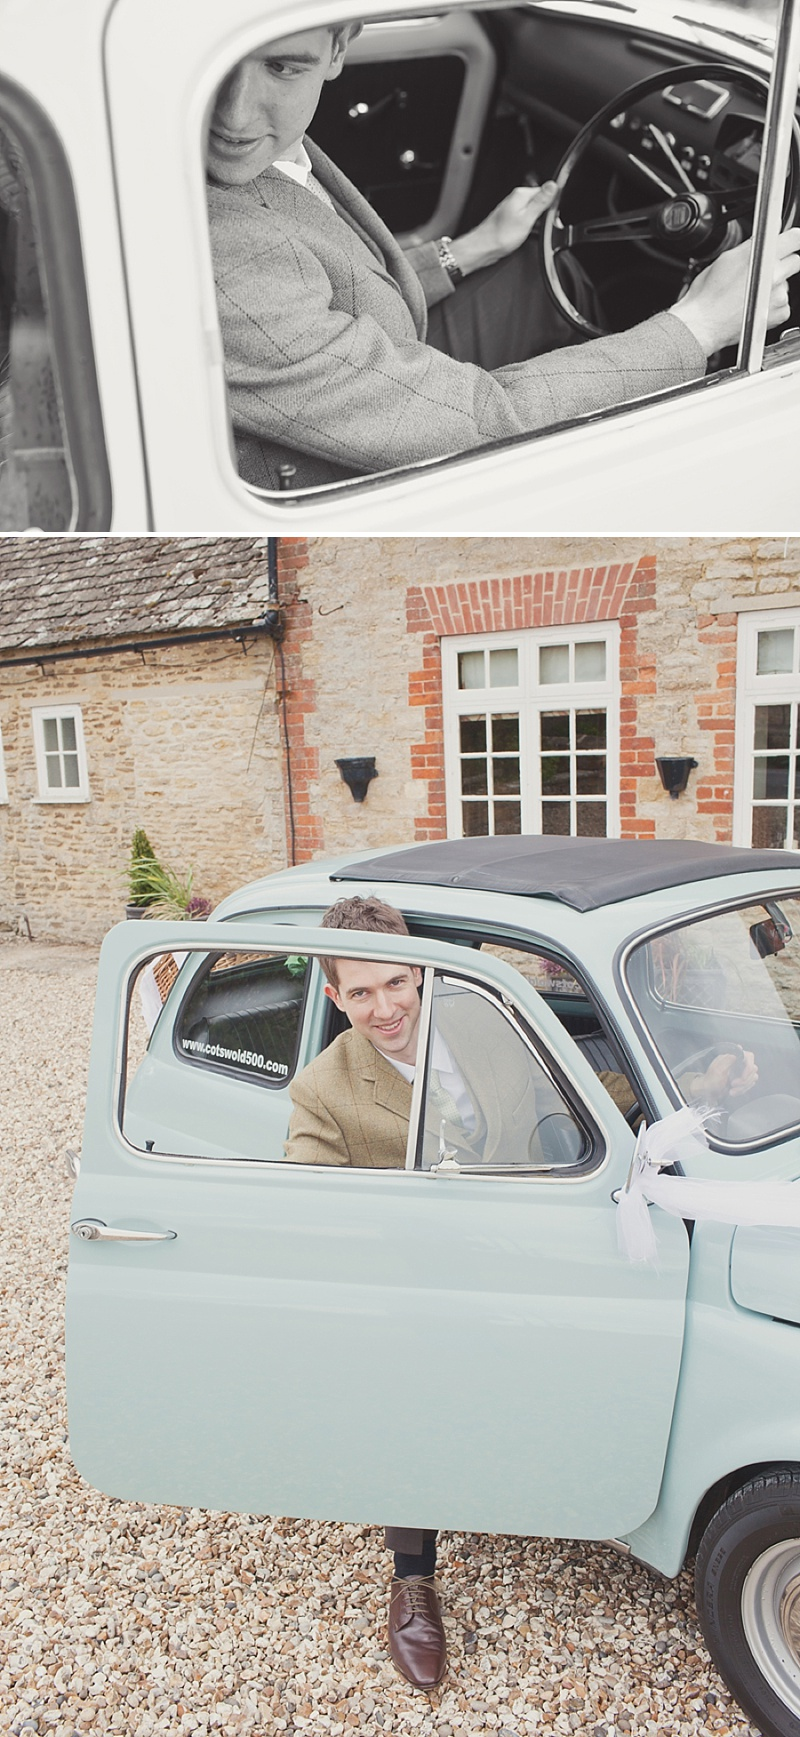 A Countryside Fair Themed Wedding at The Trout Inn Oxfordshire, Images by Cotton Candy Photography. Bride in Vintage Gown from Charlie Brear, Groom In Tweed suit and flat cap_0008